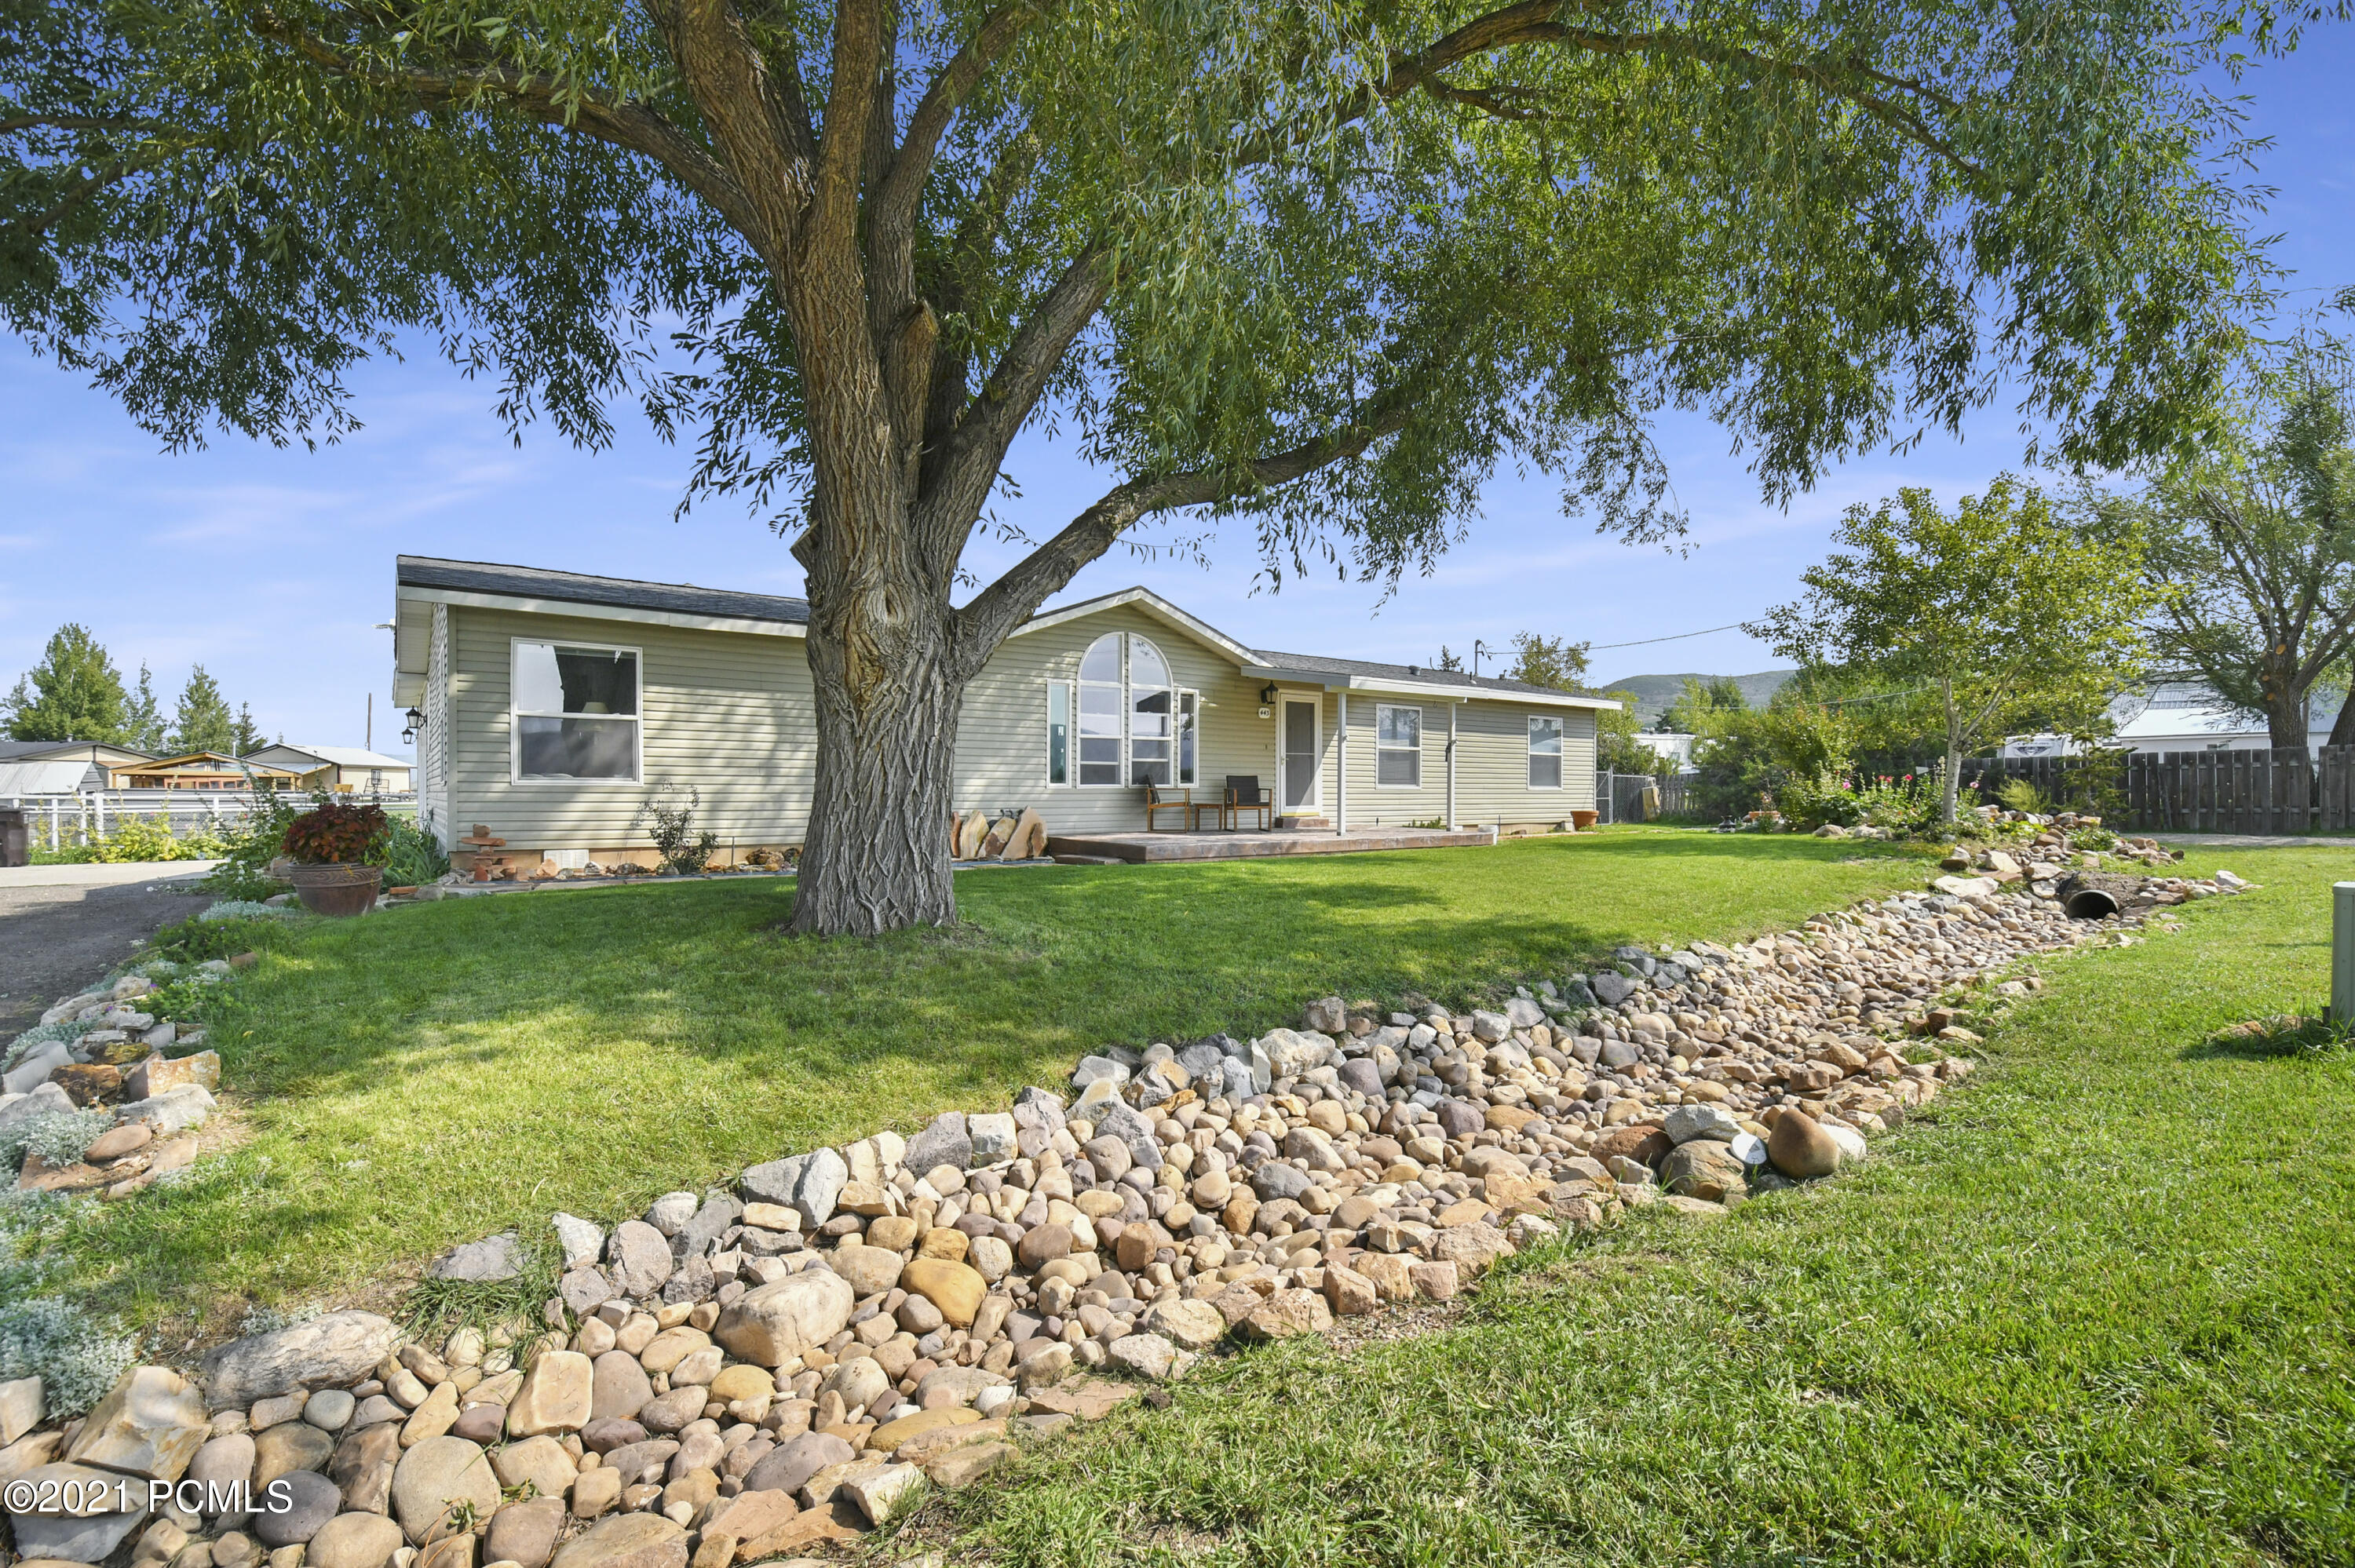 443 East State Rd. 35, Francis, Utah 84036, 3 Bedrooms Bedrooms, ,2 BathroomsBathrooms,Single Family,For Sale,State Rd. 35,12103521